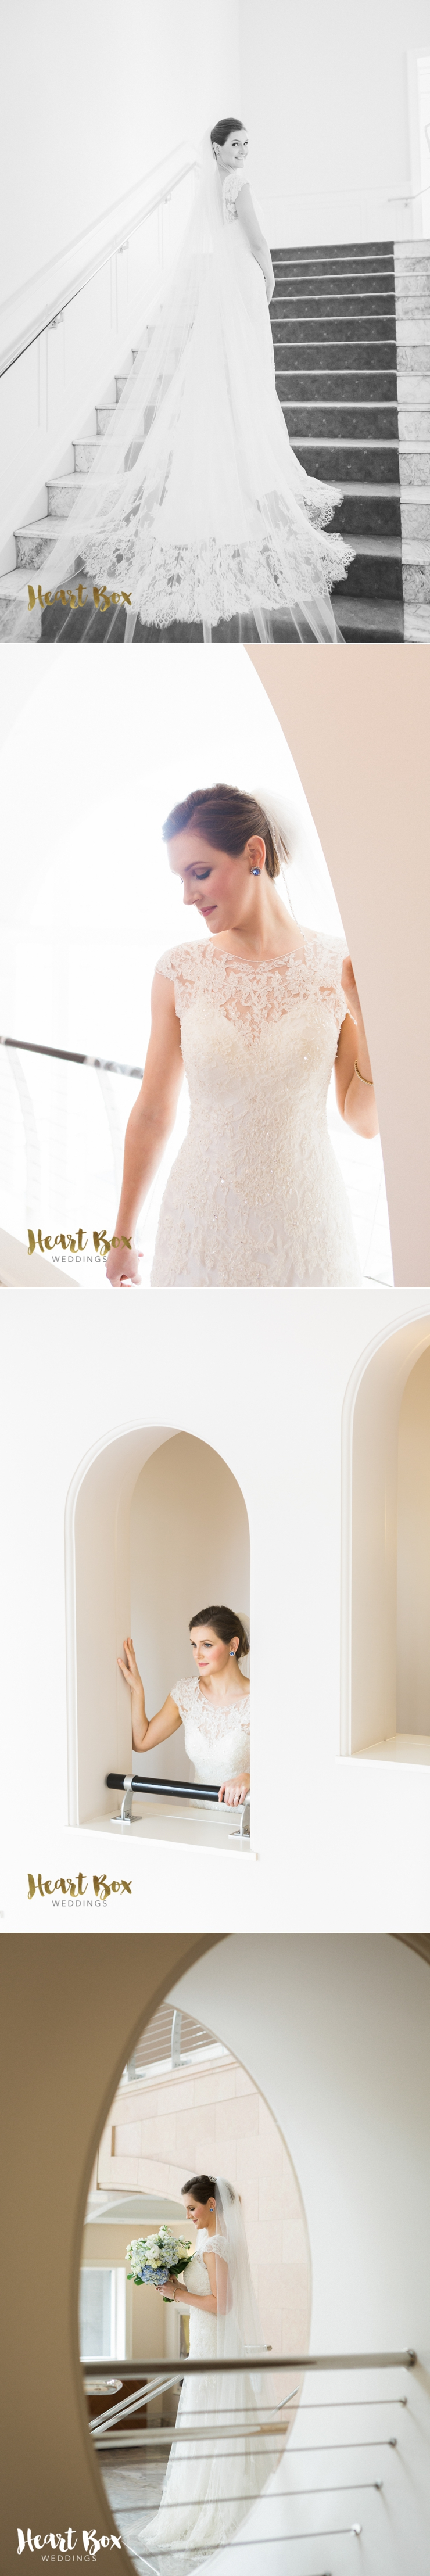 Mary Styrsky Bridal Collages 2.jpg